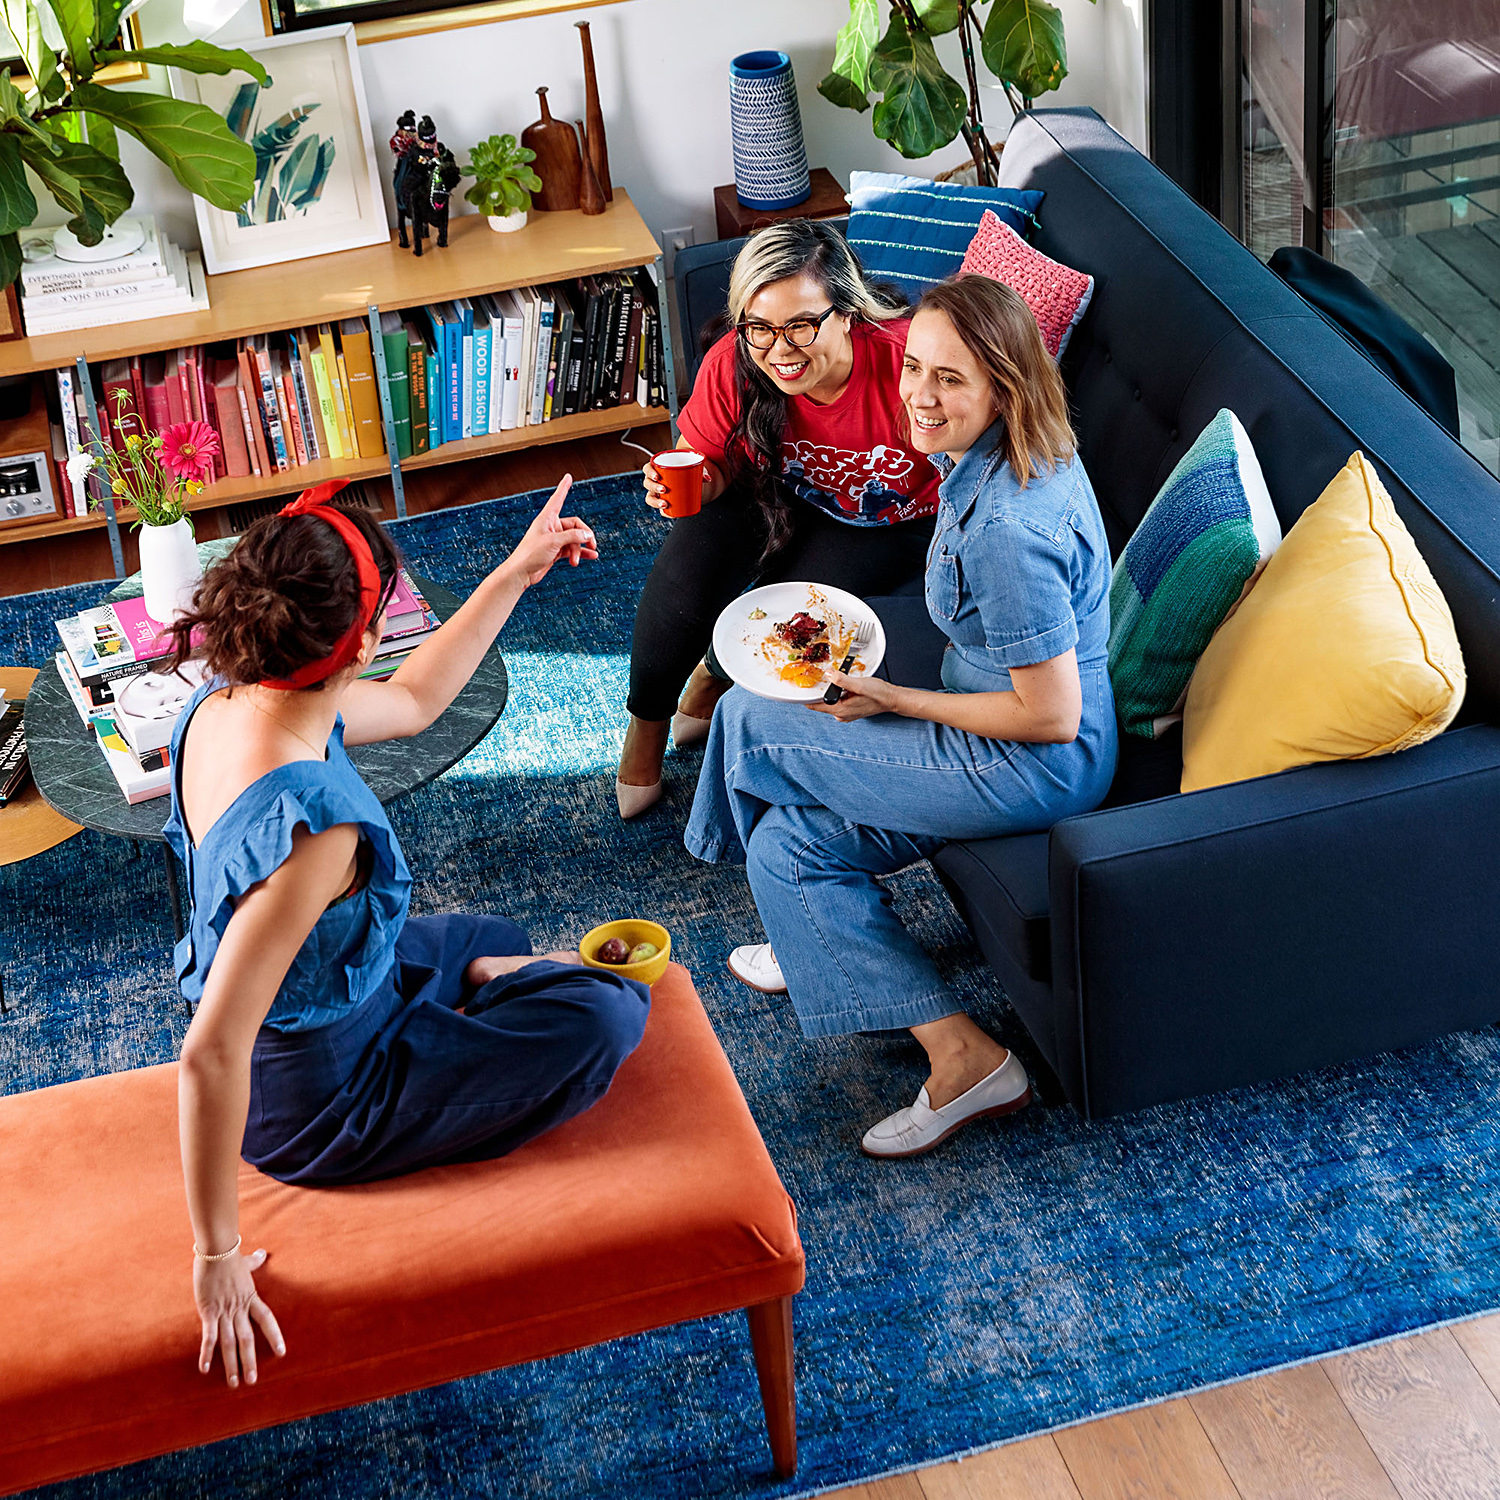 Ellen Bennett and friends in colorful living room